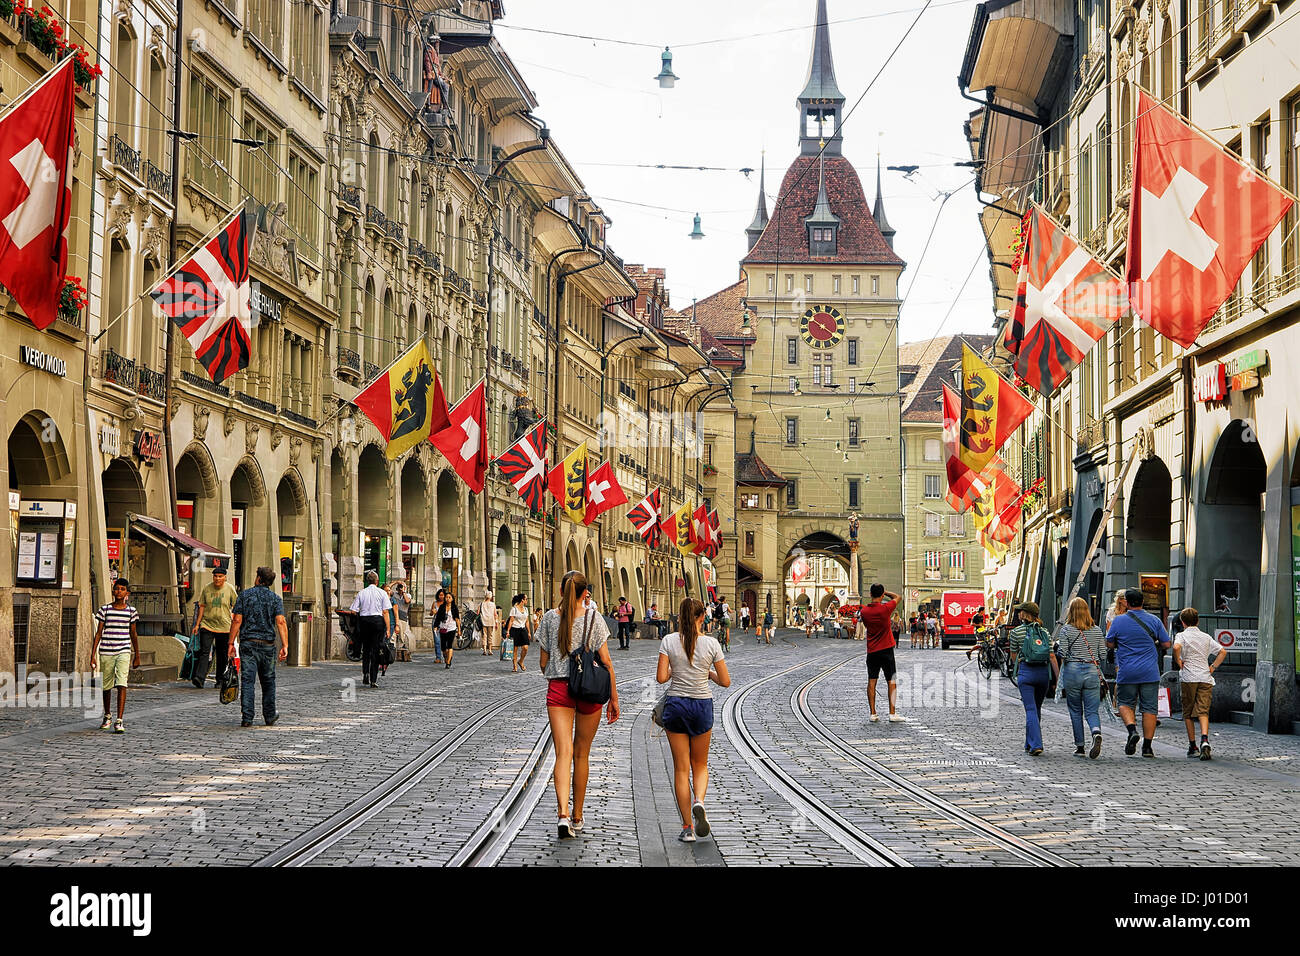 Bern, Switzerland - August 31, 2016: Girls and other people at Kafigturm tower on Marktgasse street with shopping - Stock Image